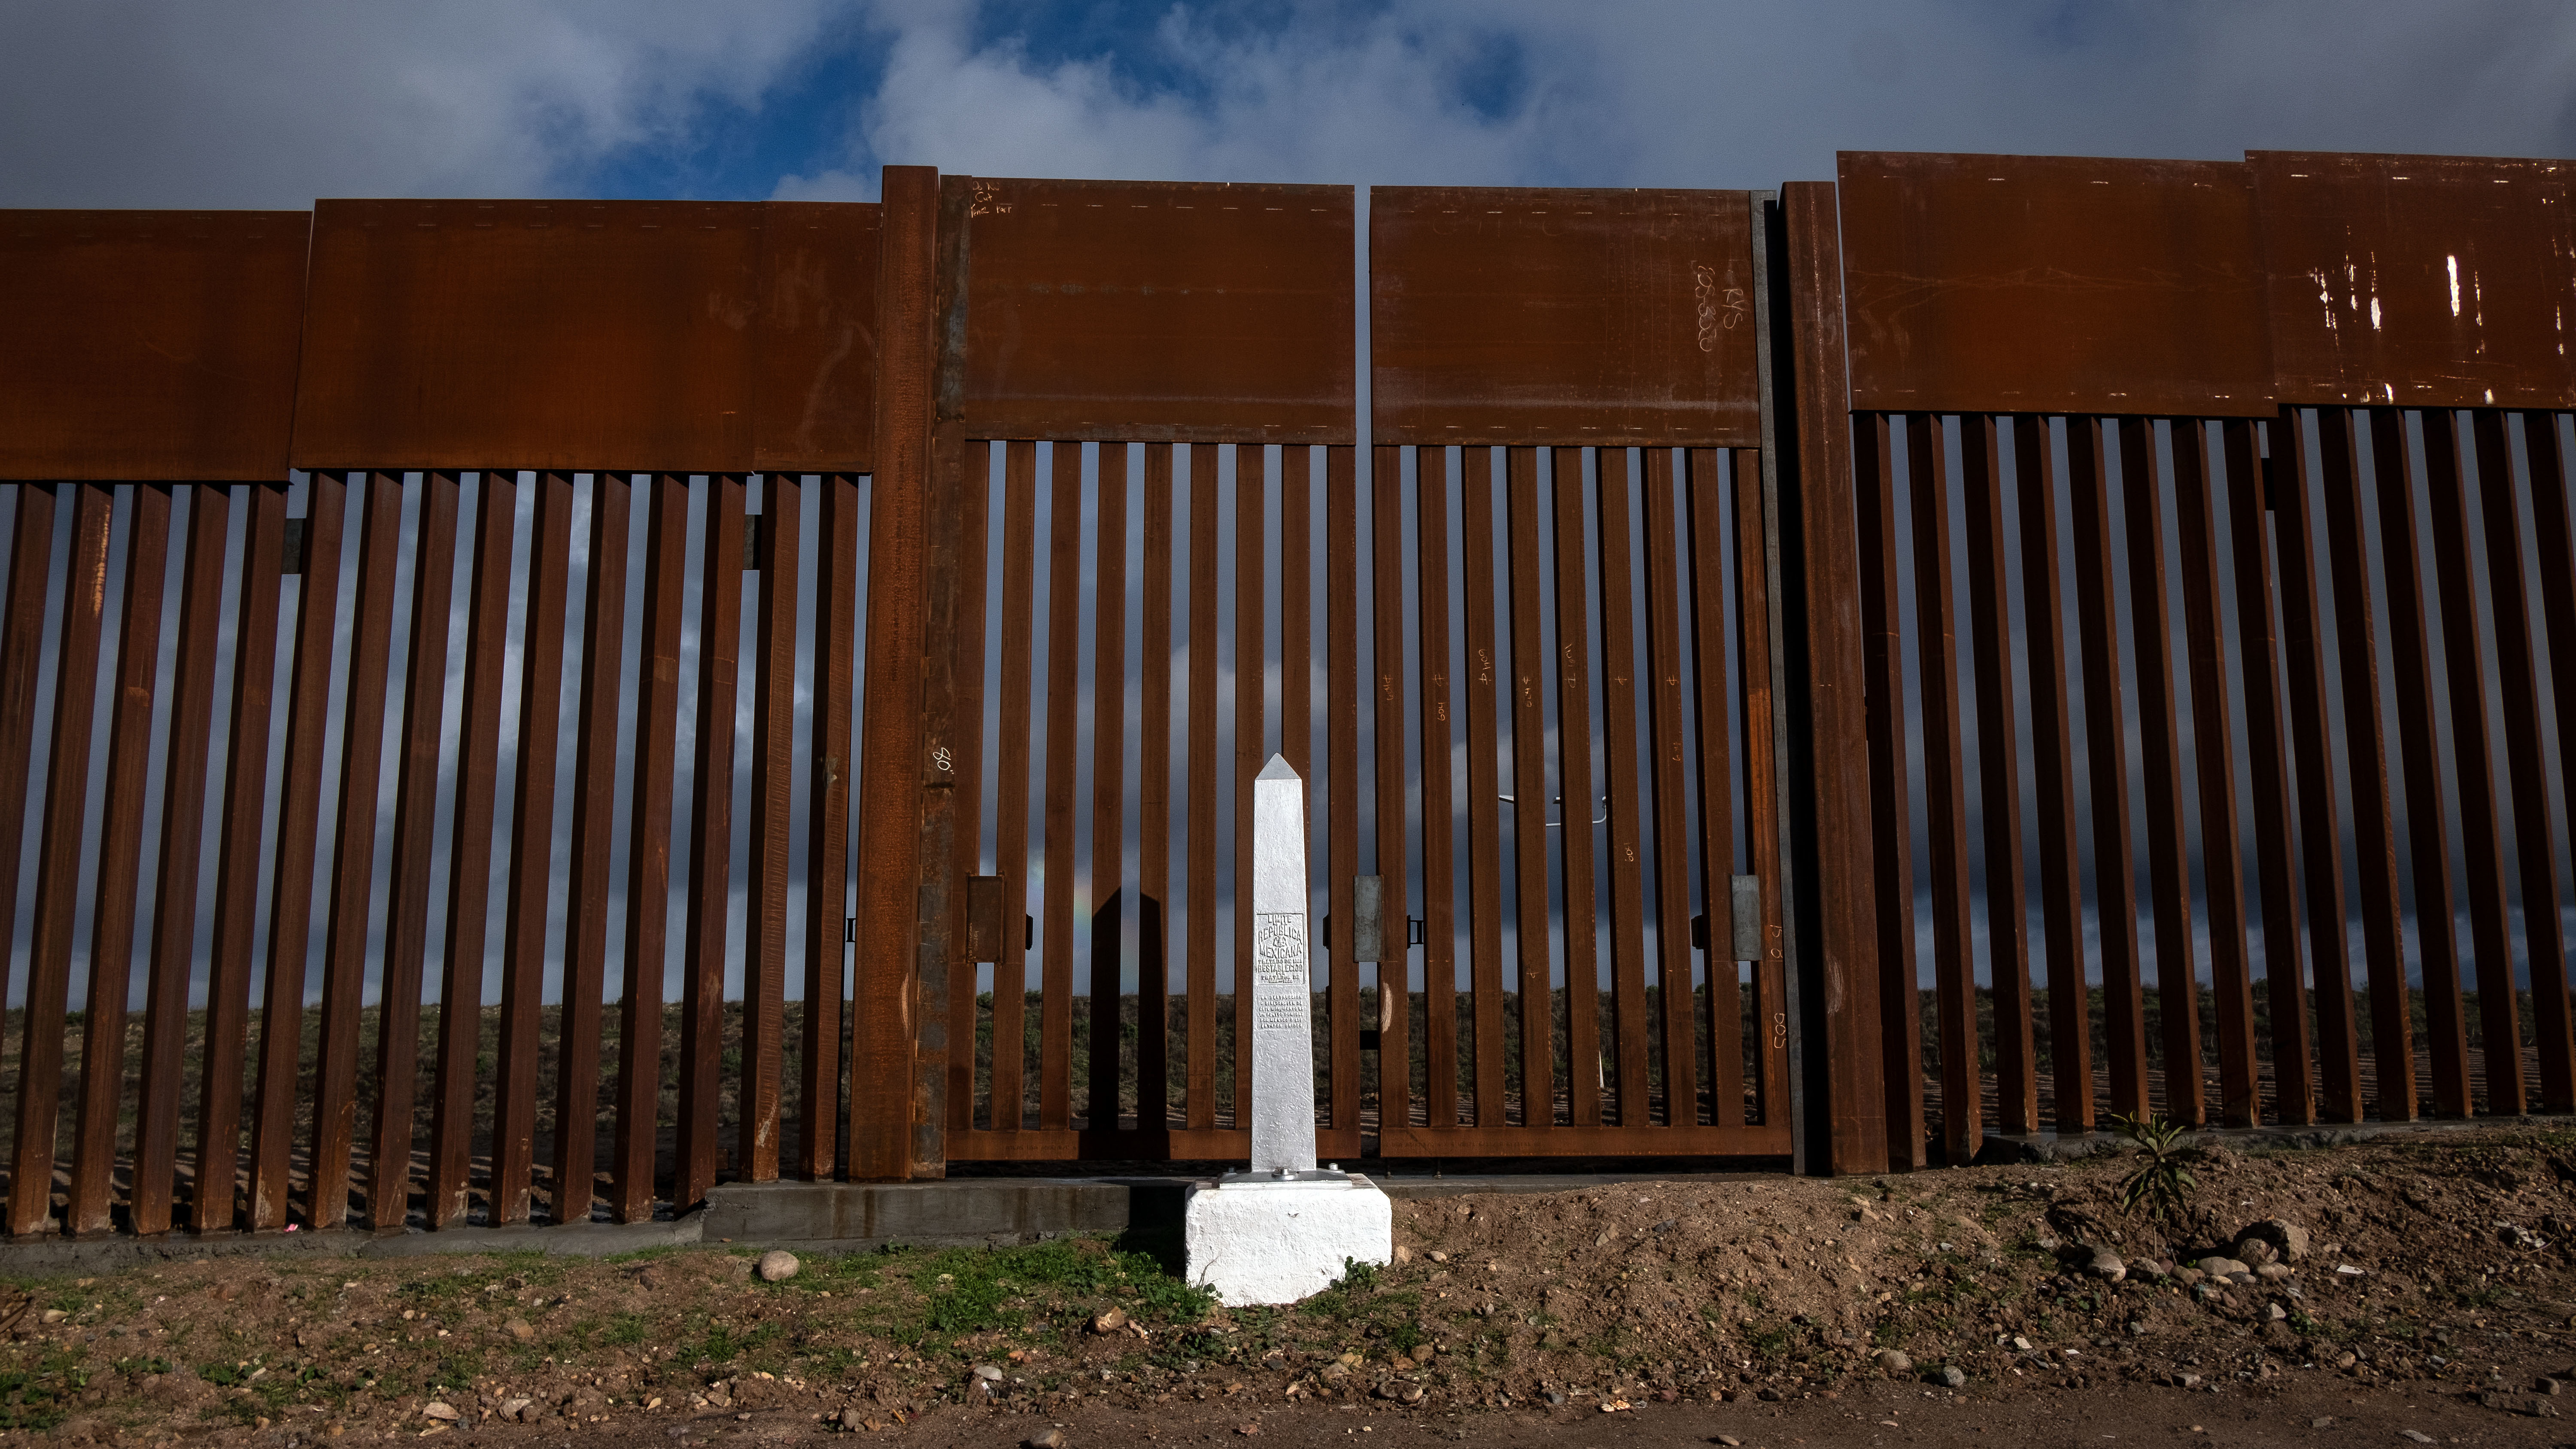 A section of the reinforced U.S.-Mexico border fence in the Otay Mesa area, San Diego County, is seen from Tijuana in Mexico. President Trump says he may declare a national emergency to bypass Congress and build a border wall.